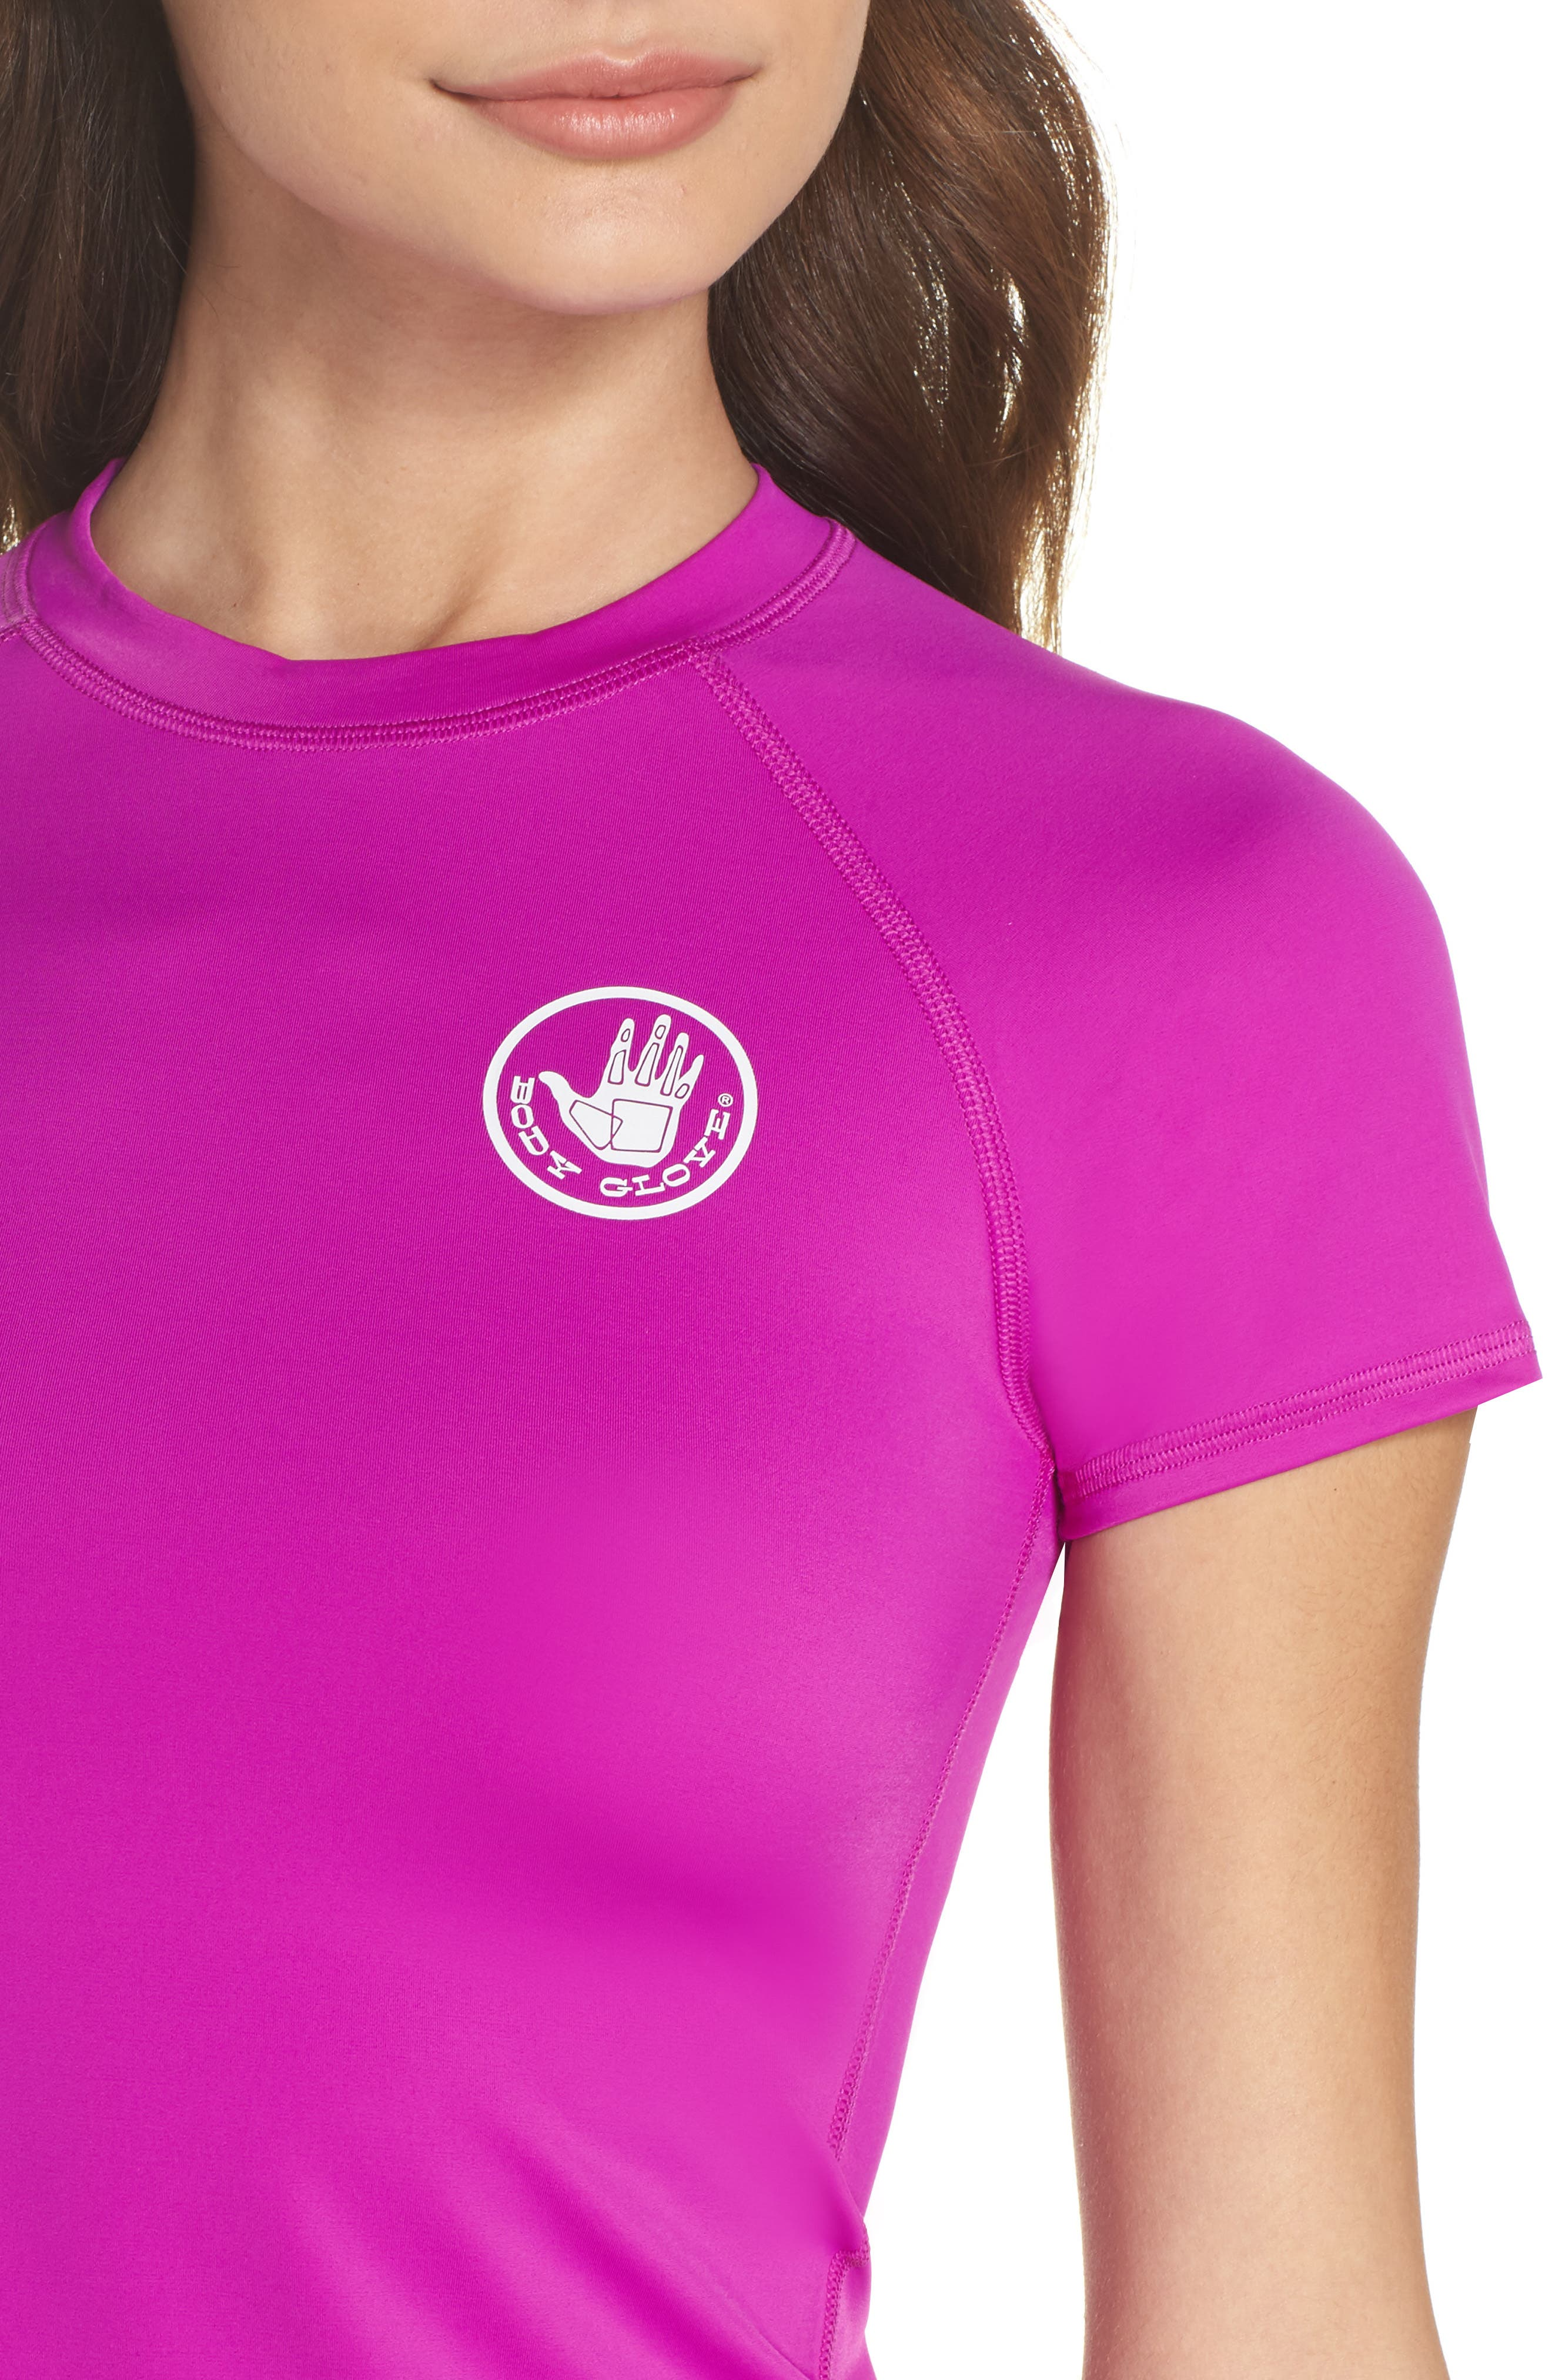 'Smoothies in Motion' Short Sleeve Rashguard,                             Alternate thumbnail 4, color,                             Magnolia